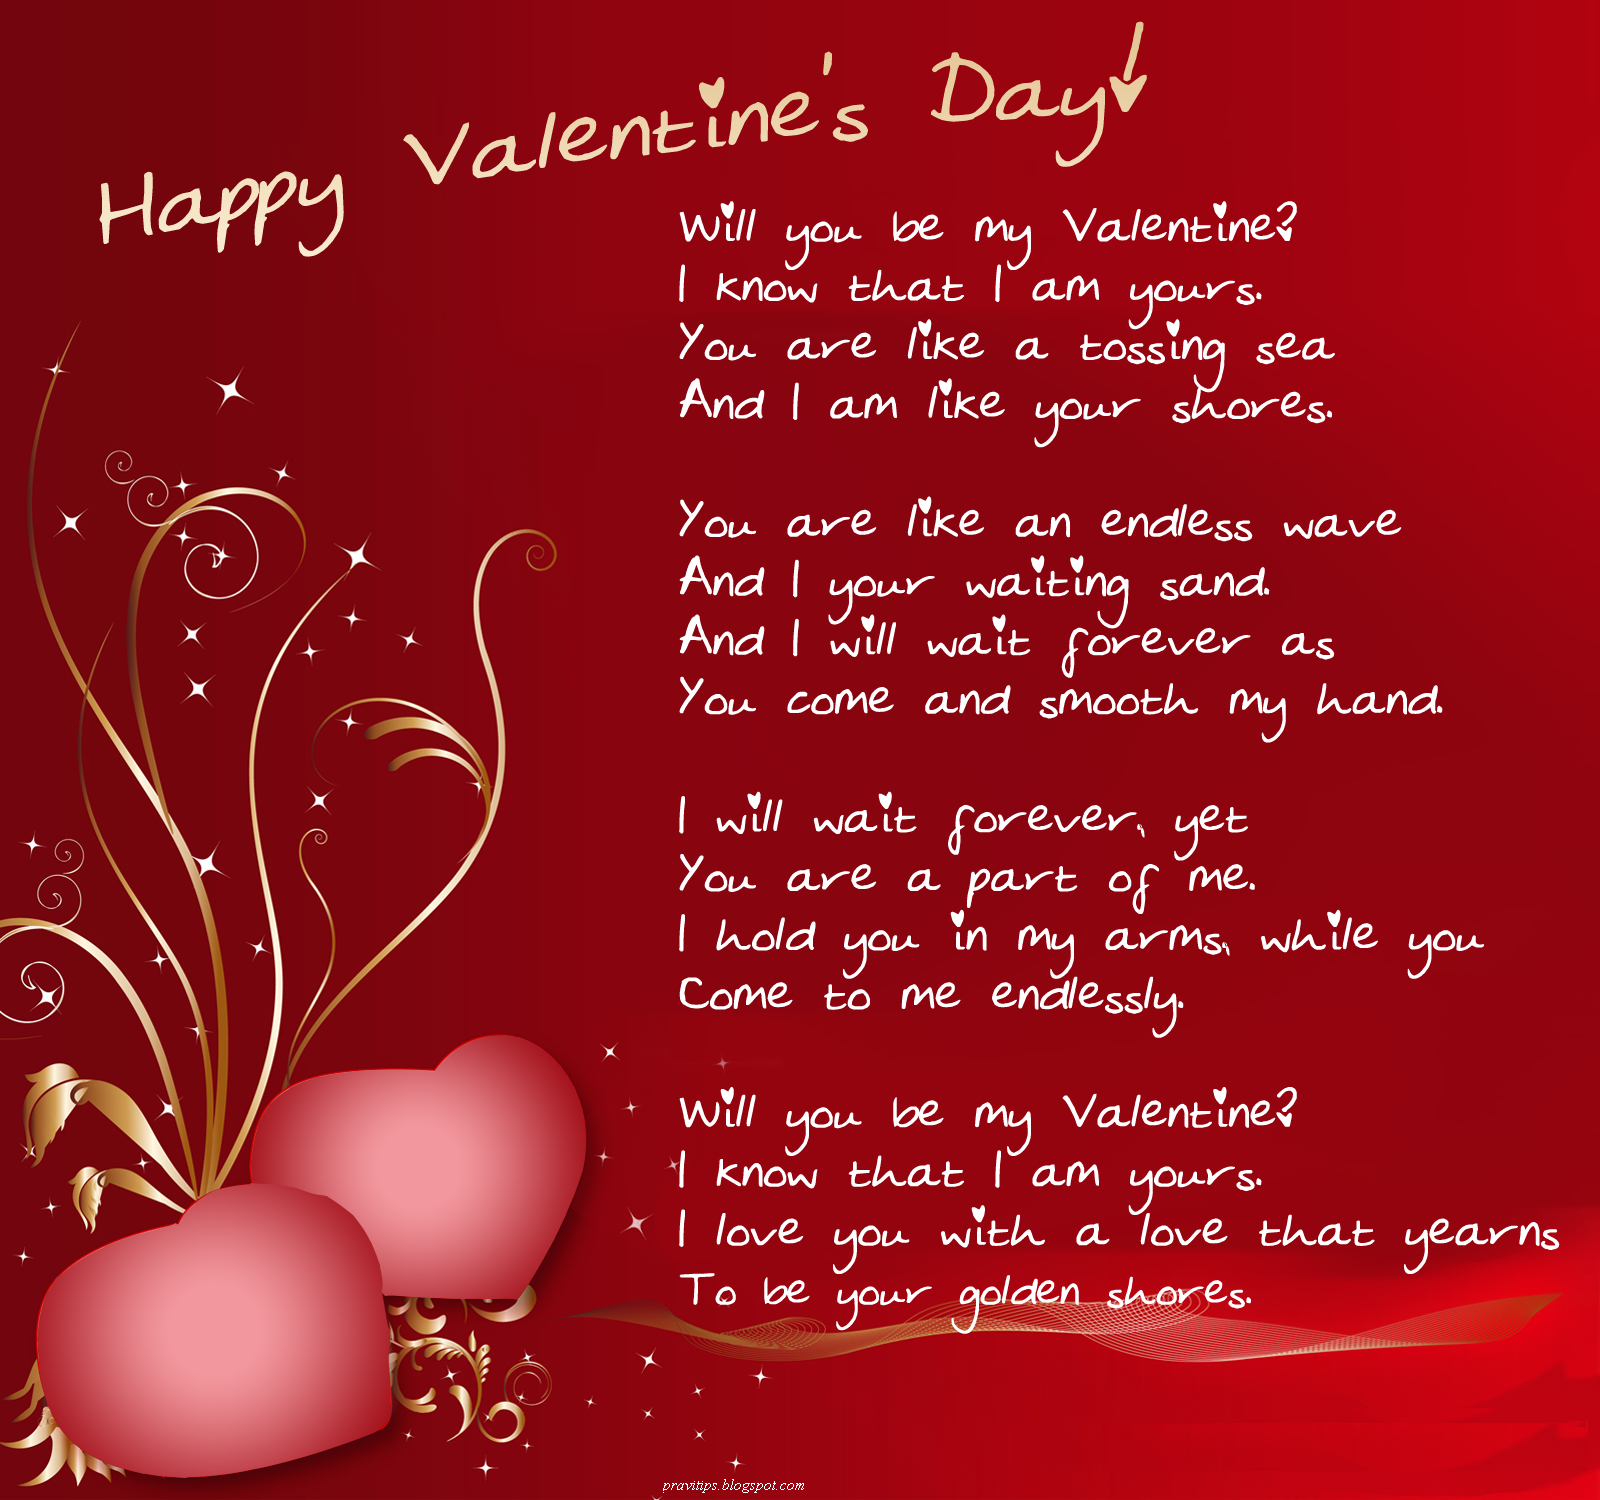 Happy Valentines Day 2017 Messages Images Quotes Greetings – Valentine Day Greeting Card Messages